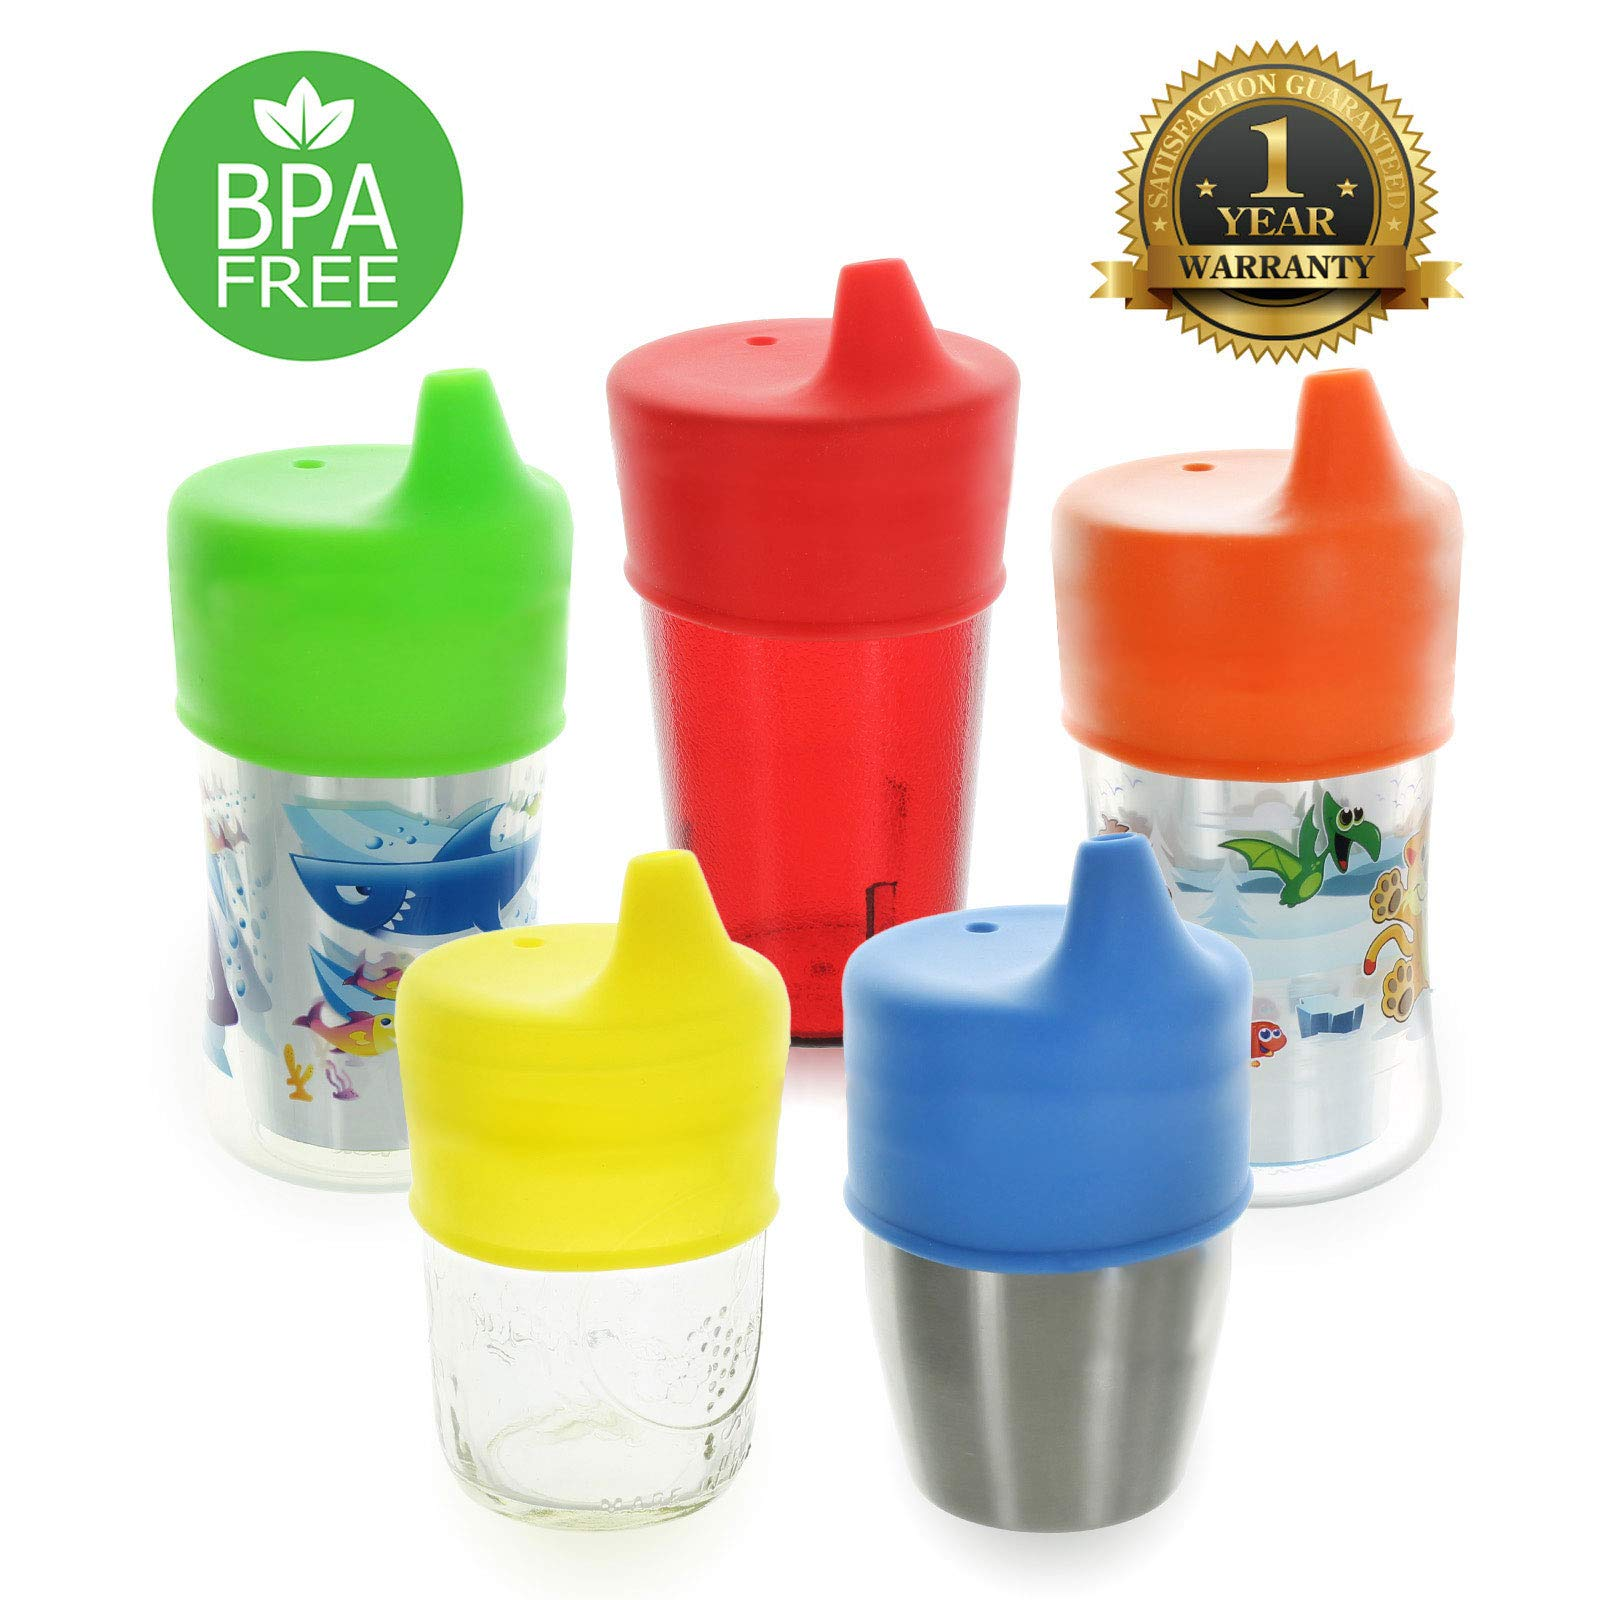 Healthy Sprouts Silicone Sippy Lids (5 Pack) - Lab Tested, Spill Proof, BPA Free, Universal Soft Spout Stretch Tops - Make Any Kid Size Cup a Sippy Cup for Toddler, Baby, Infant (Red, Yellow, Blue) by Healthy Sprouts